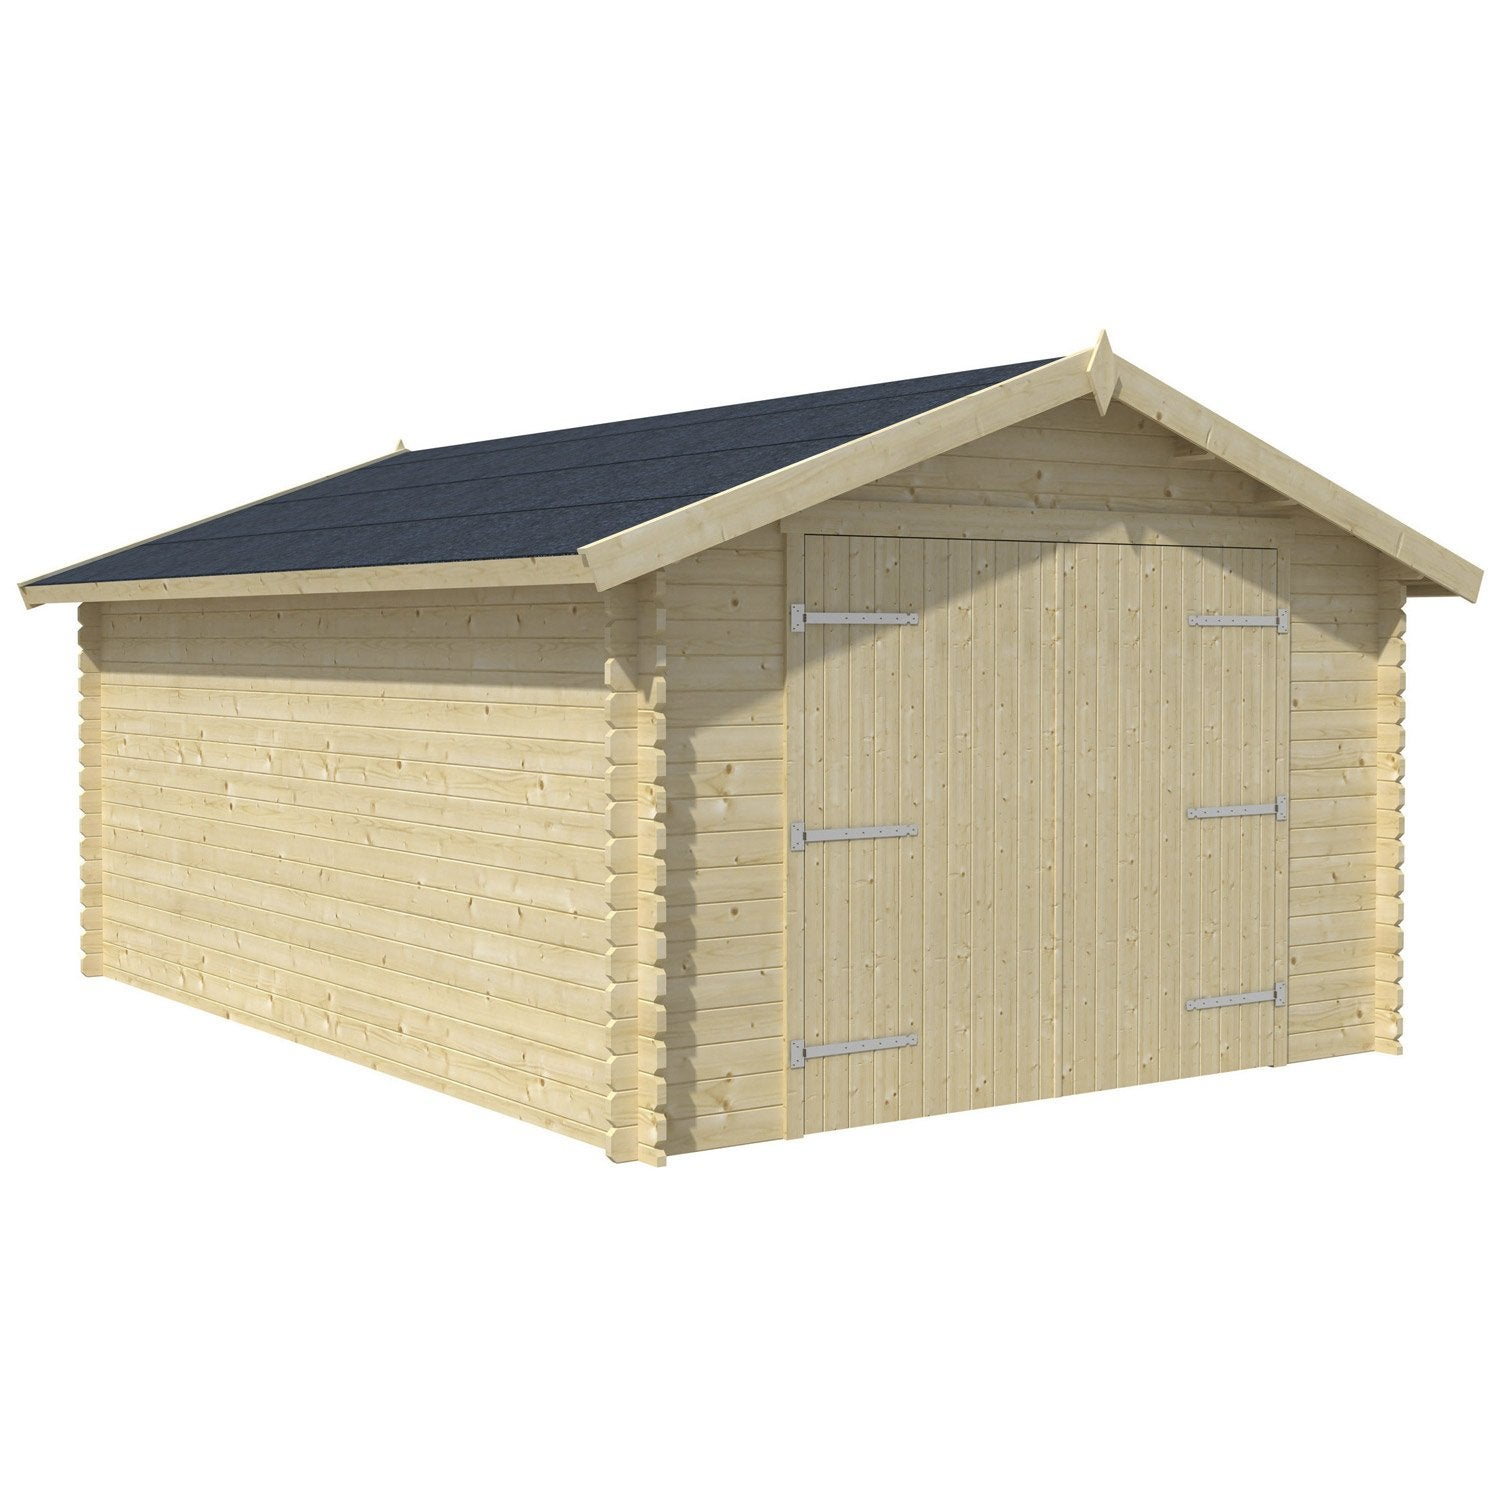 Garage bois nova 1 voiture m leroy merlin - Isolation garage leroy merlin ...